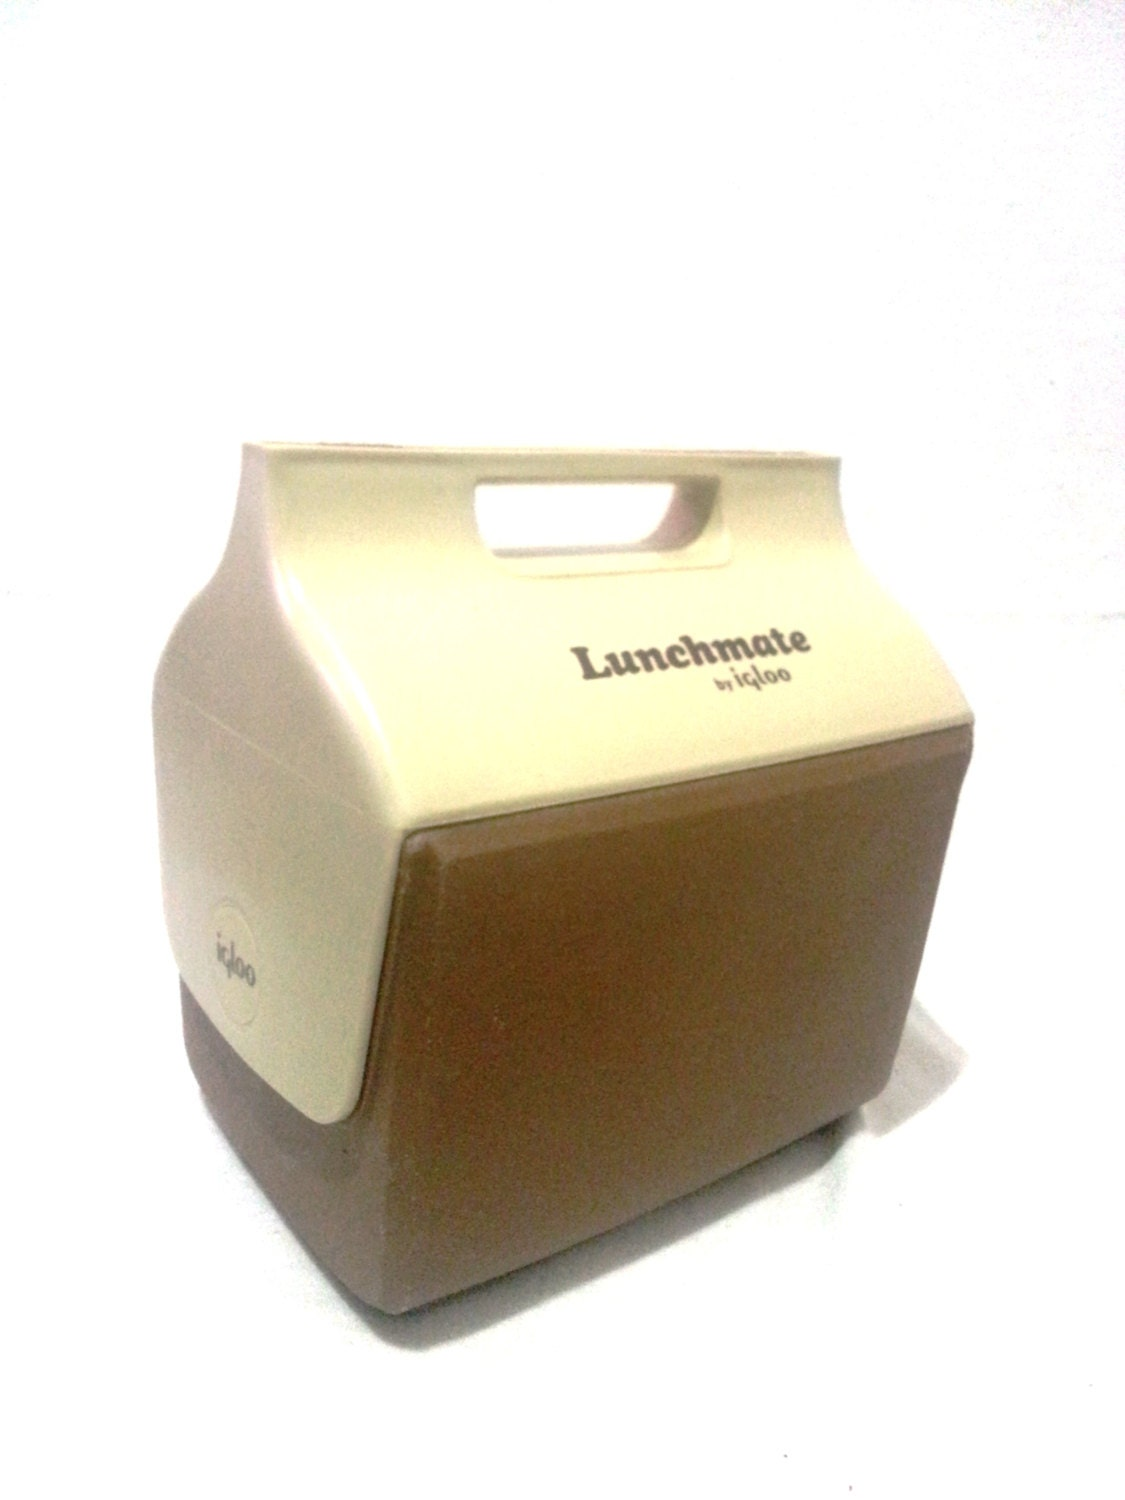 Vintage igloo lunchmate 6 pack cooler lunch box it219 - Igloo vintage ...